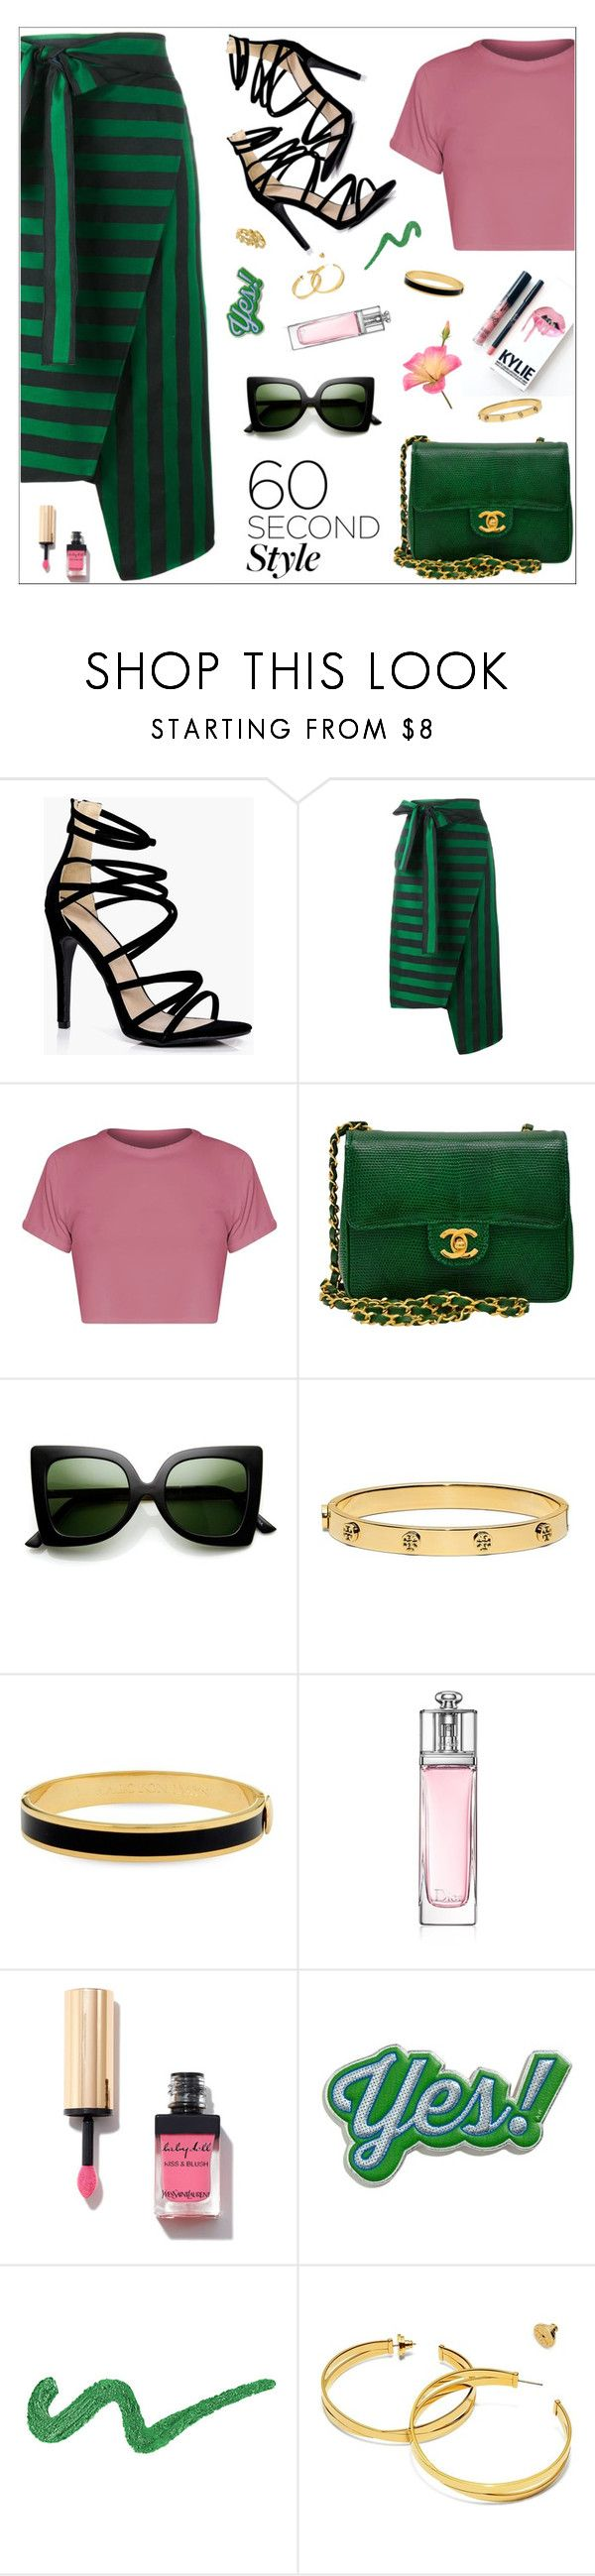 """""""Striped Skirt"""" by nastenkakot on Polyvore featuring Boohoo, Rochas, Chanel, ZeroUV, Kylie Cosmetics, Tory Burch, Halcyon Days, Christian Dior, Yves Saint Laurent and Anya Hindmarch"""